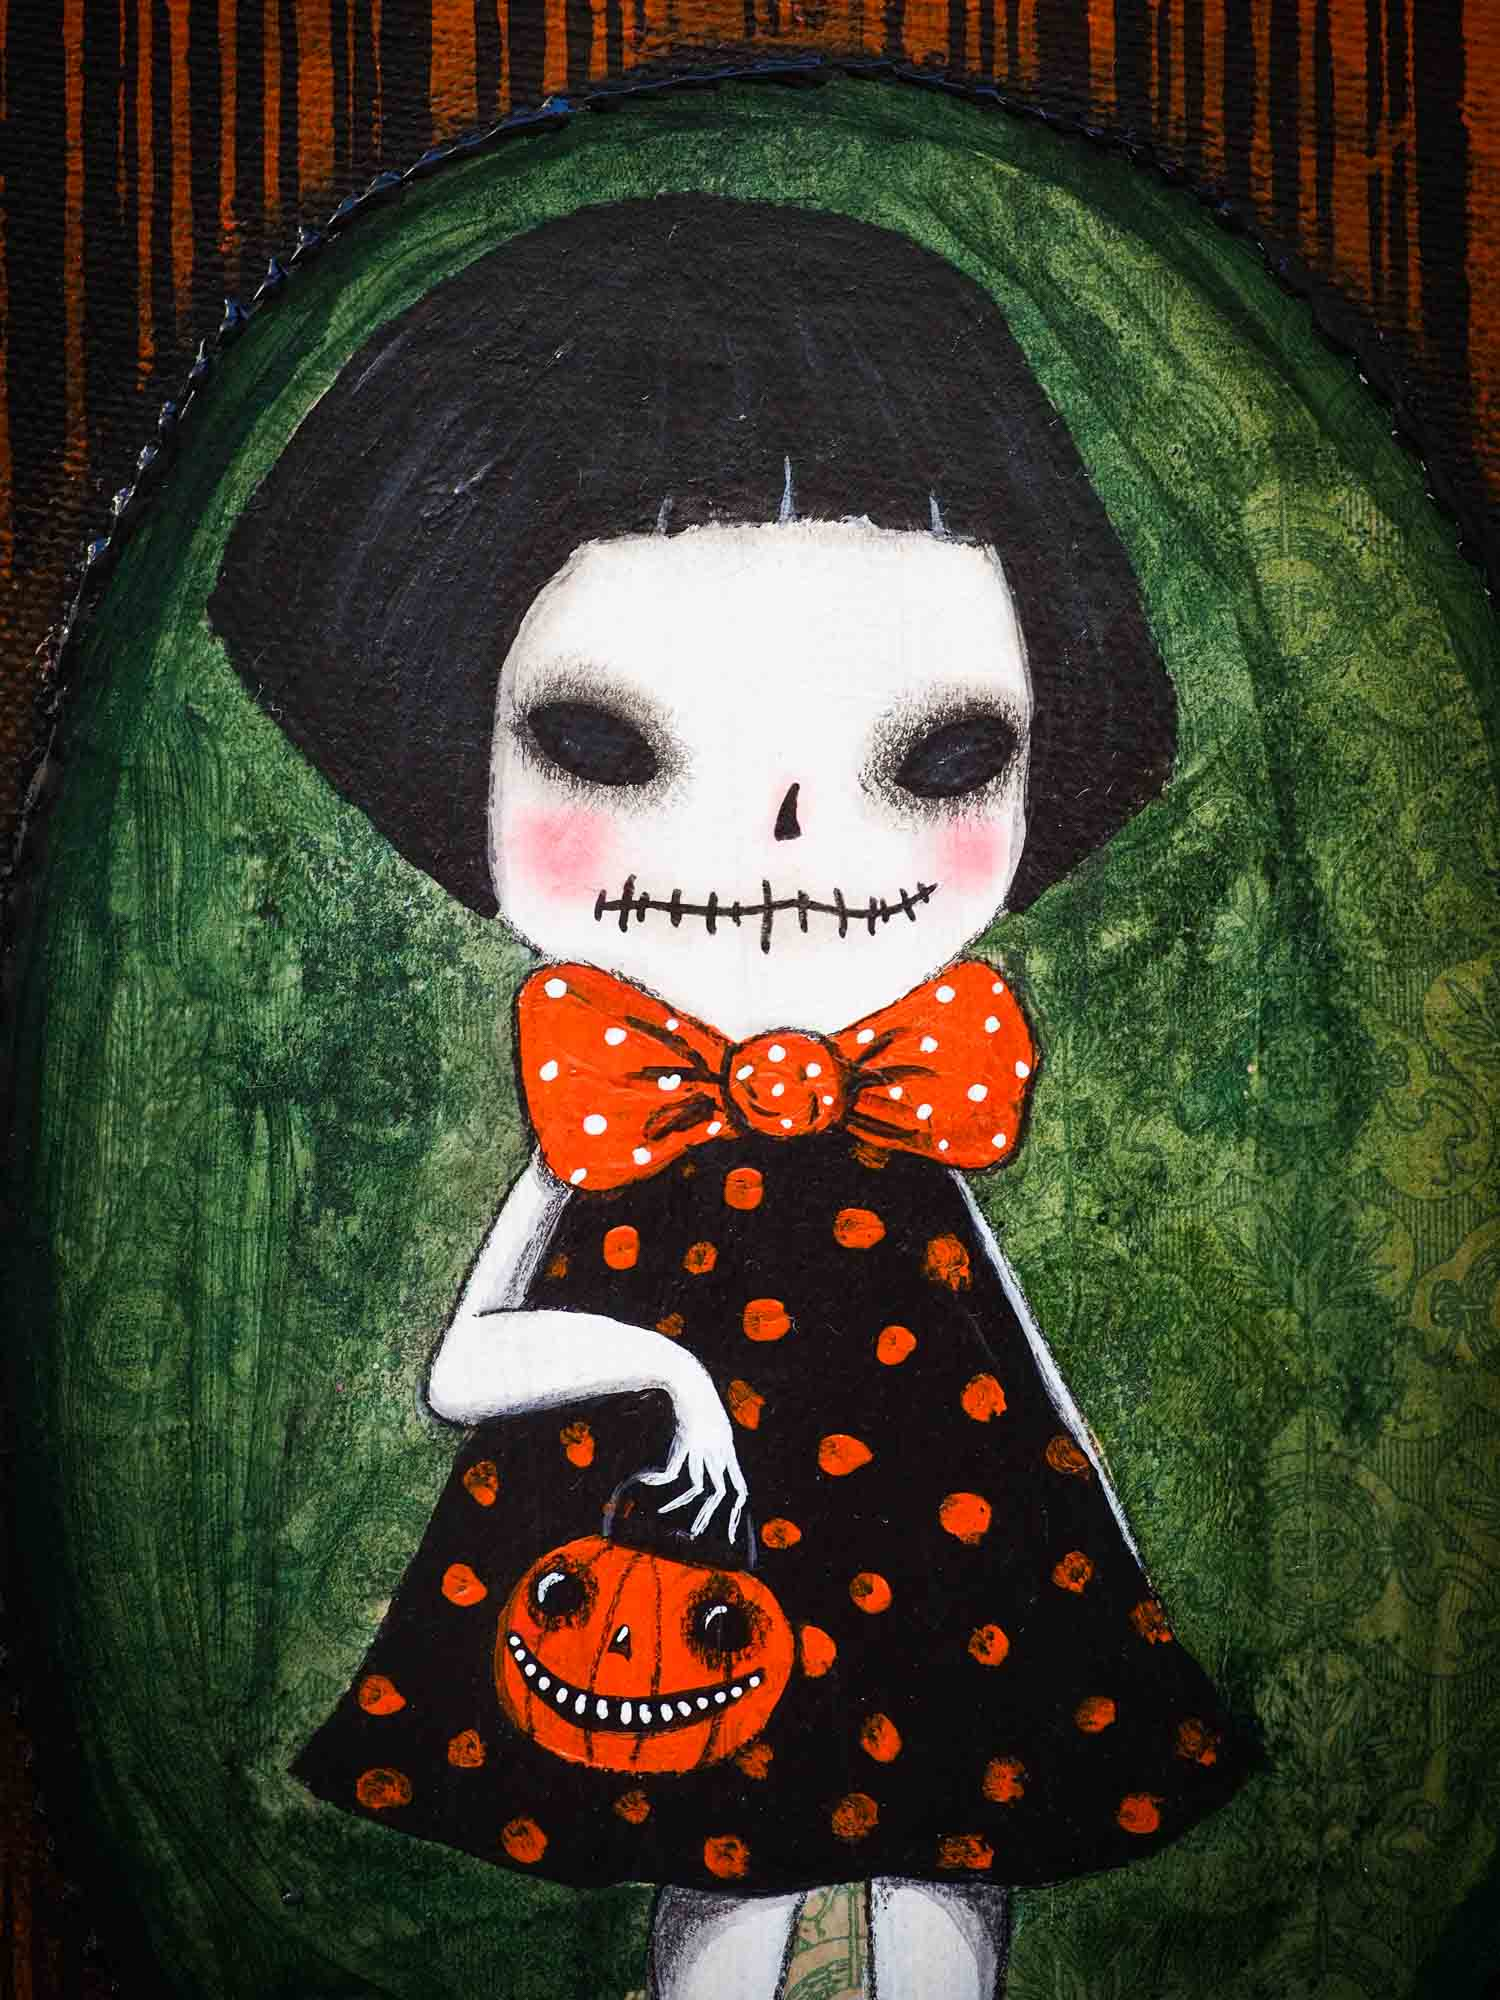 This whimsical zombie girl is an original Halloween painting by Danita Art. She is getting ready to go out trick-or-treat with her friends the wolves, the vampires, the witches, the ghouls and the ghosts.  Painted on canvas, even when she is a pale skinned zombie girl, she keeps the whimsical Danita eyes that you love so much.